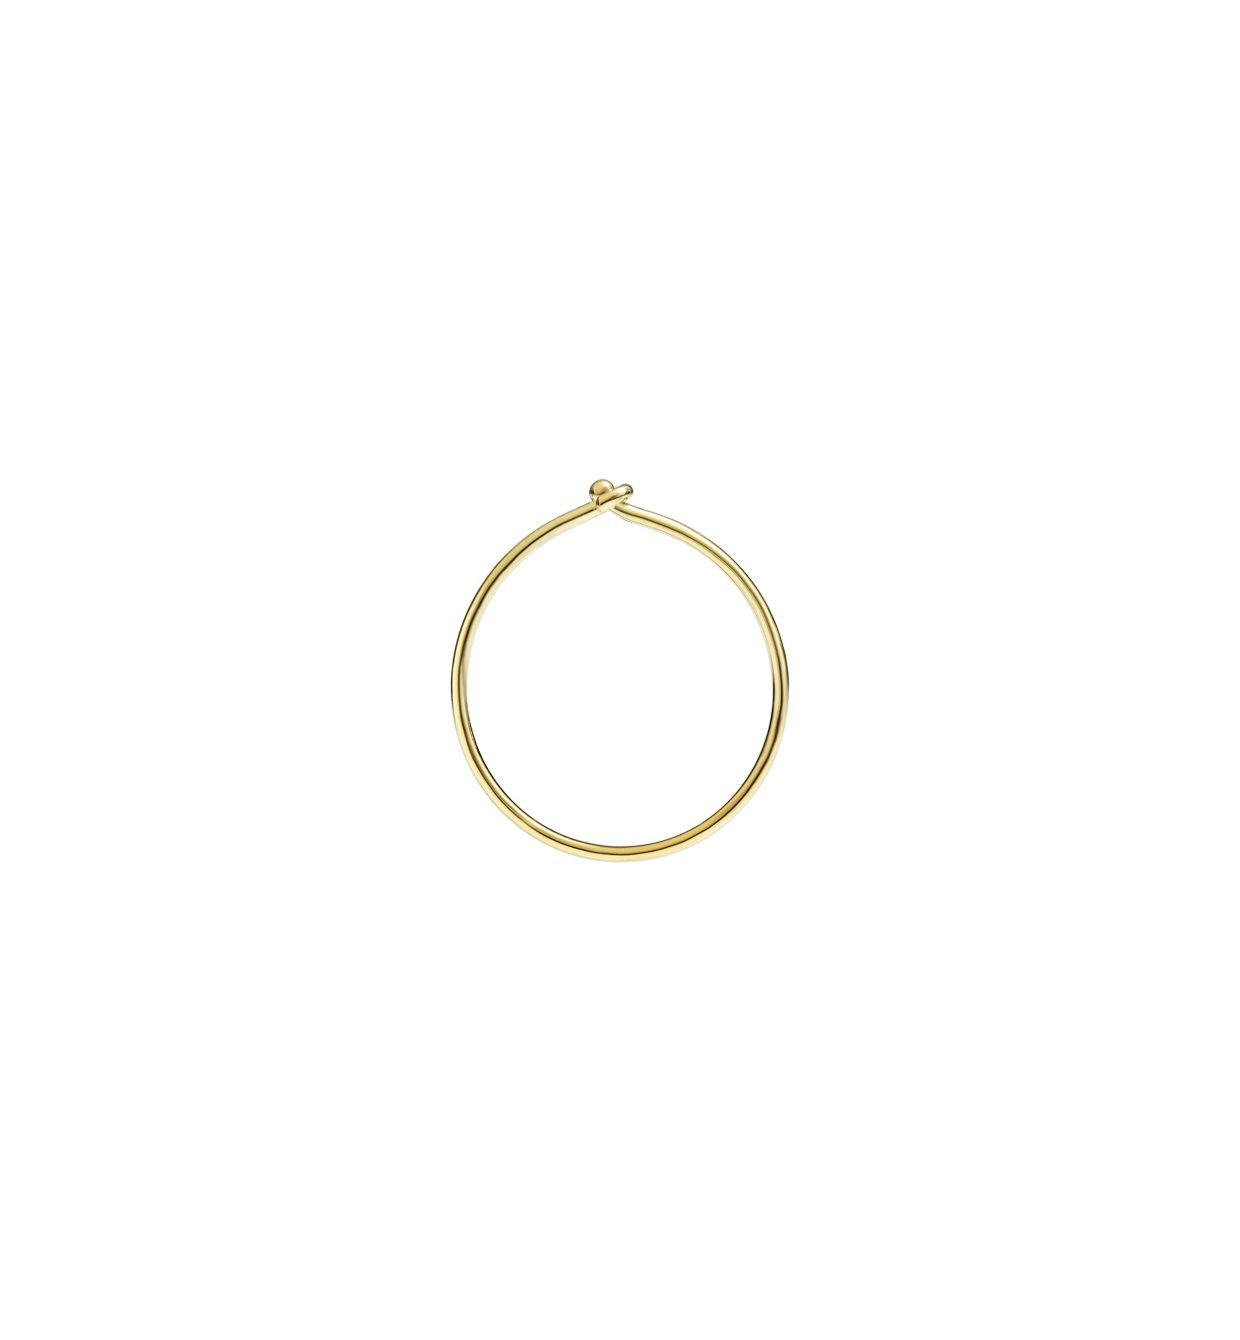 DoDo Bangle Hoop Earring in 18k Yellow Gold - small (single) - Orsini Jewellers NZ